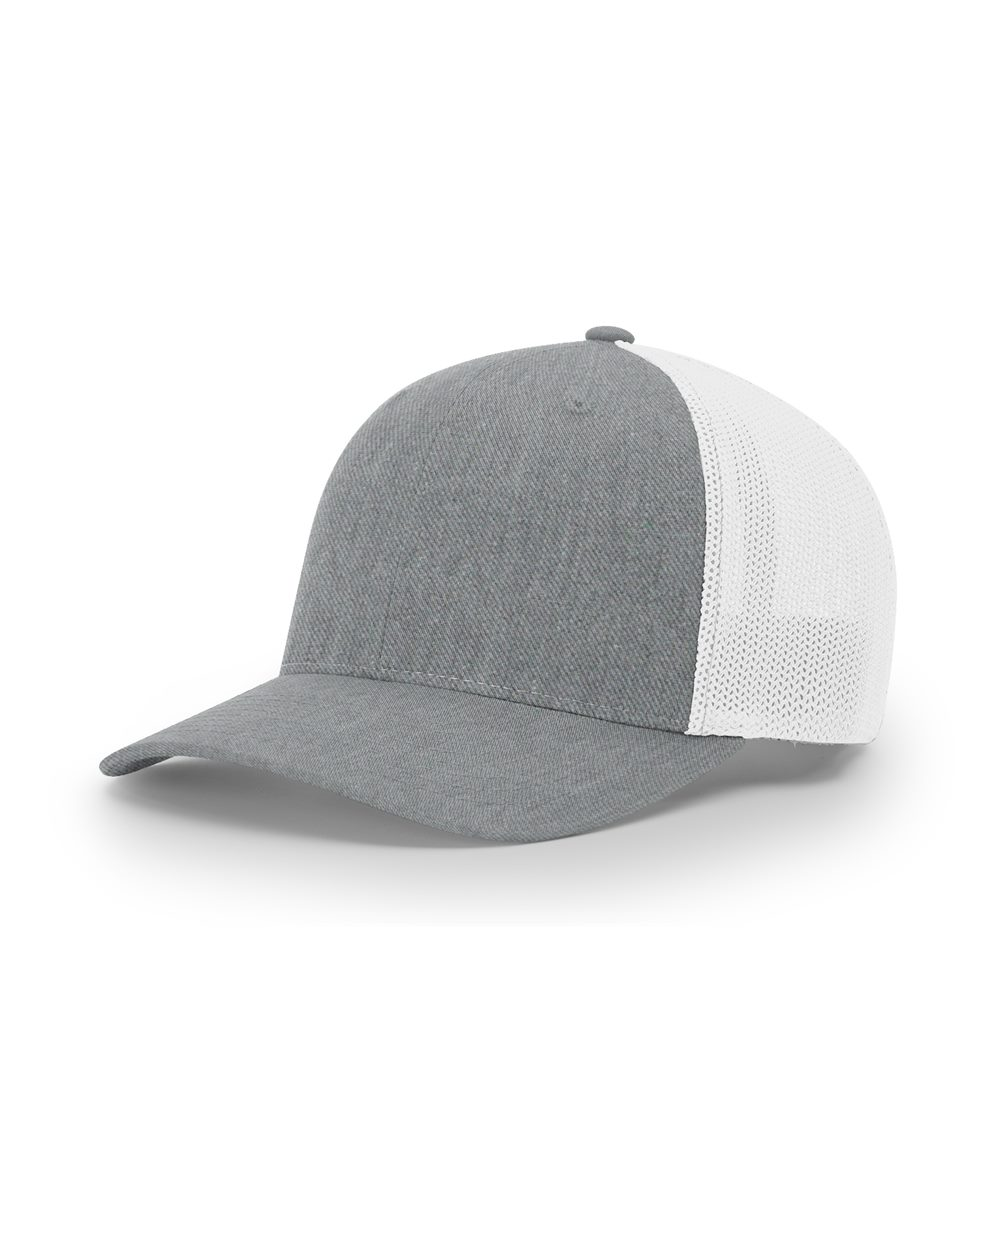 click to view Heather Grey/ White